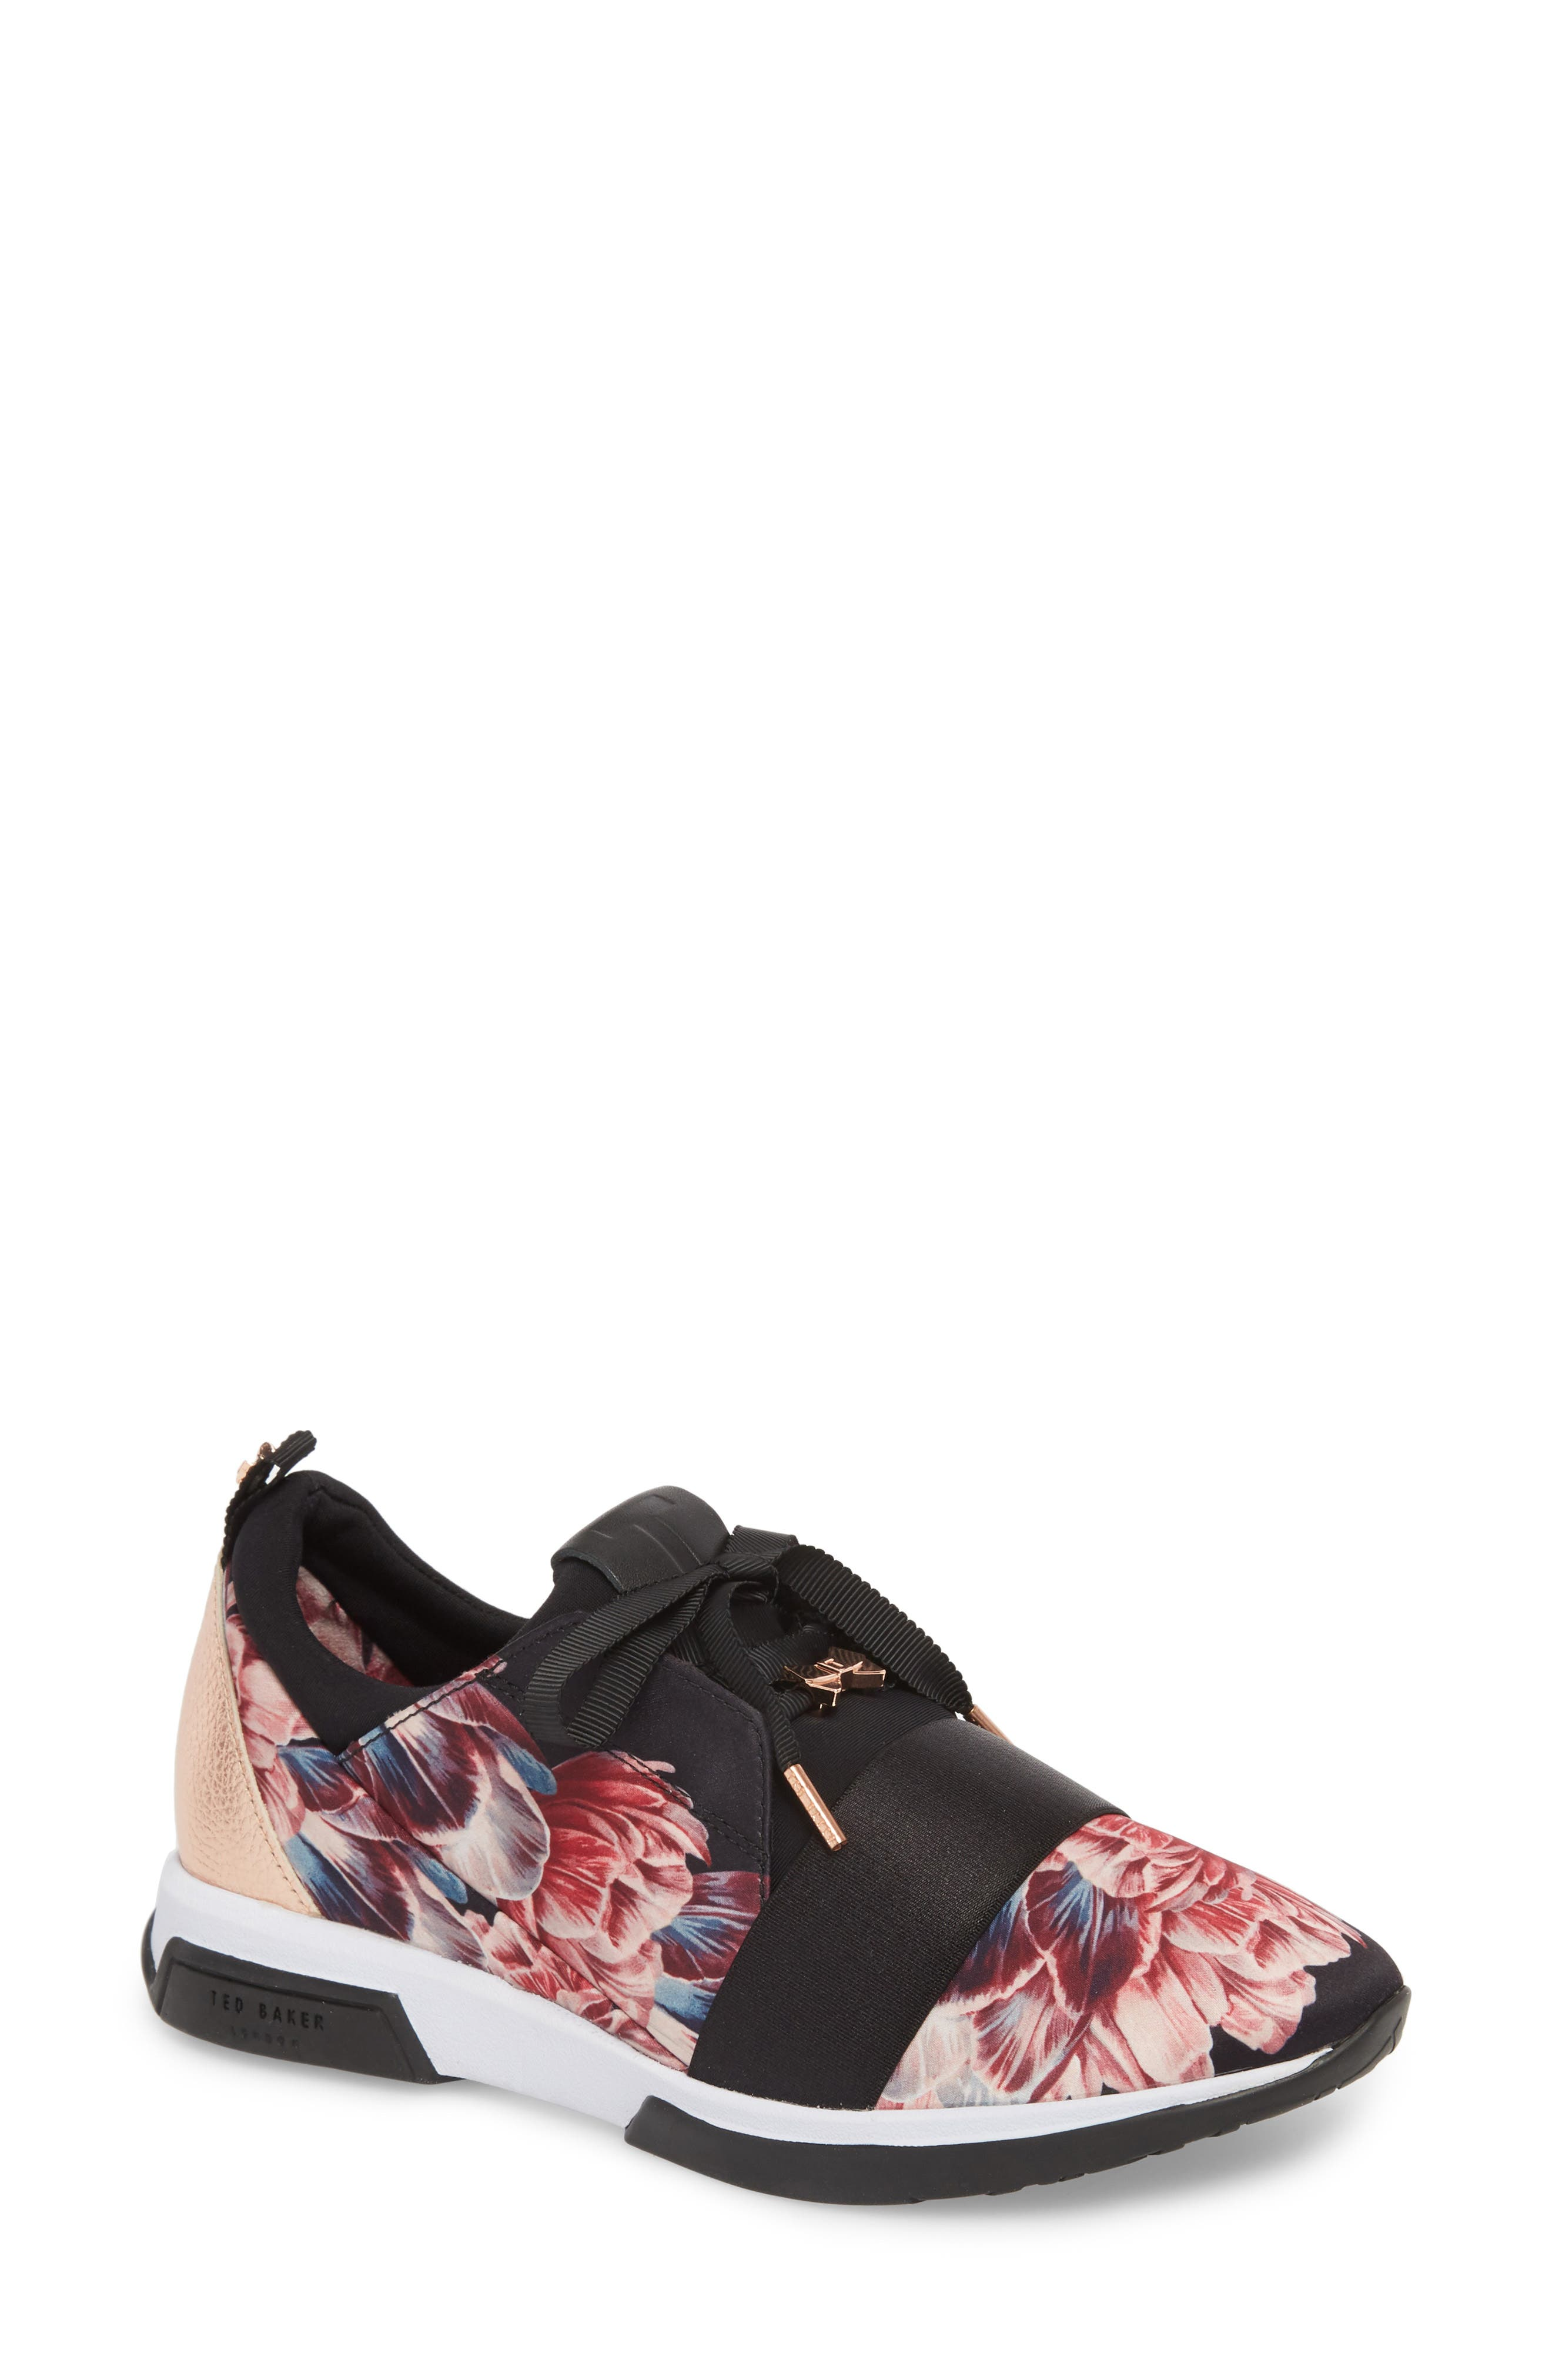 Cepap Sneaker,                         Main,                         color, Tranquility Fabric